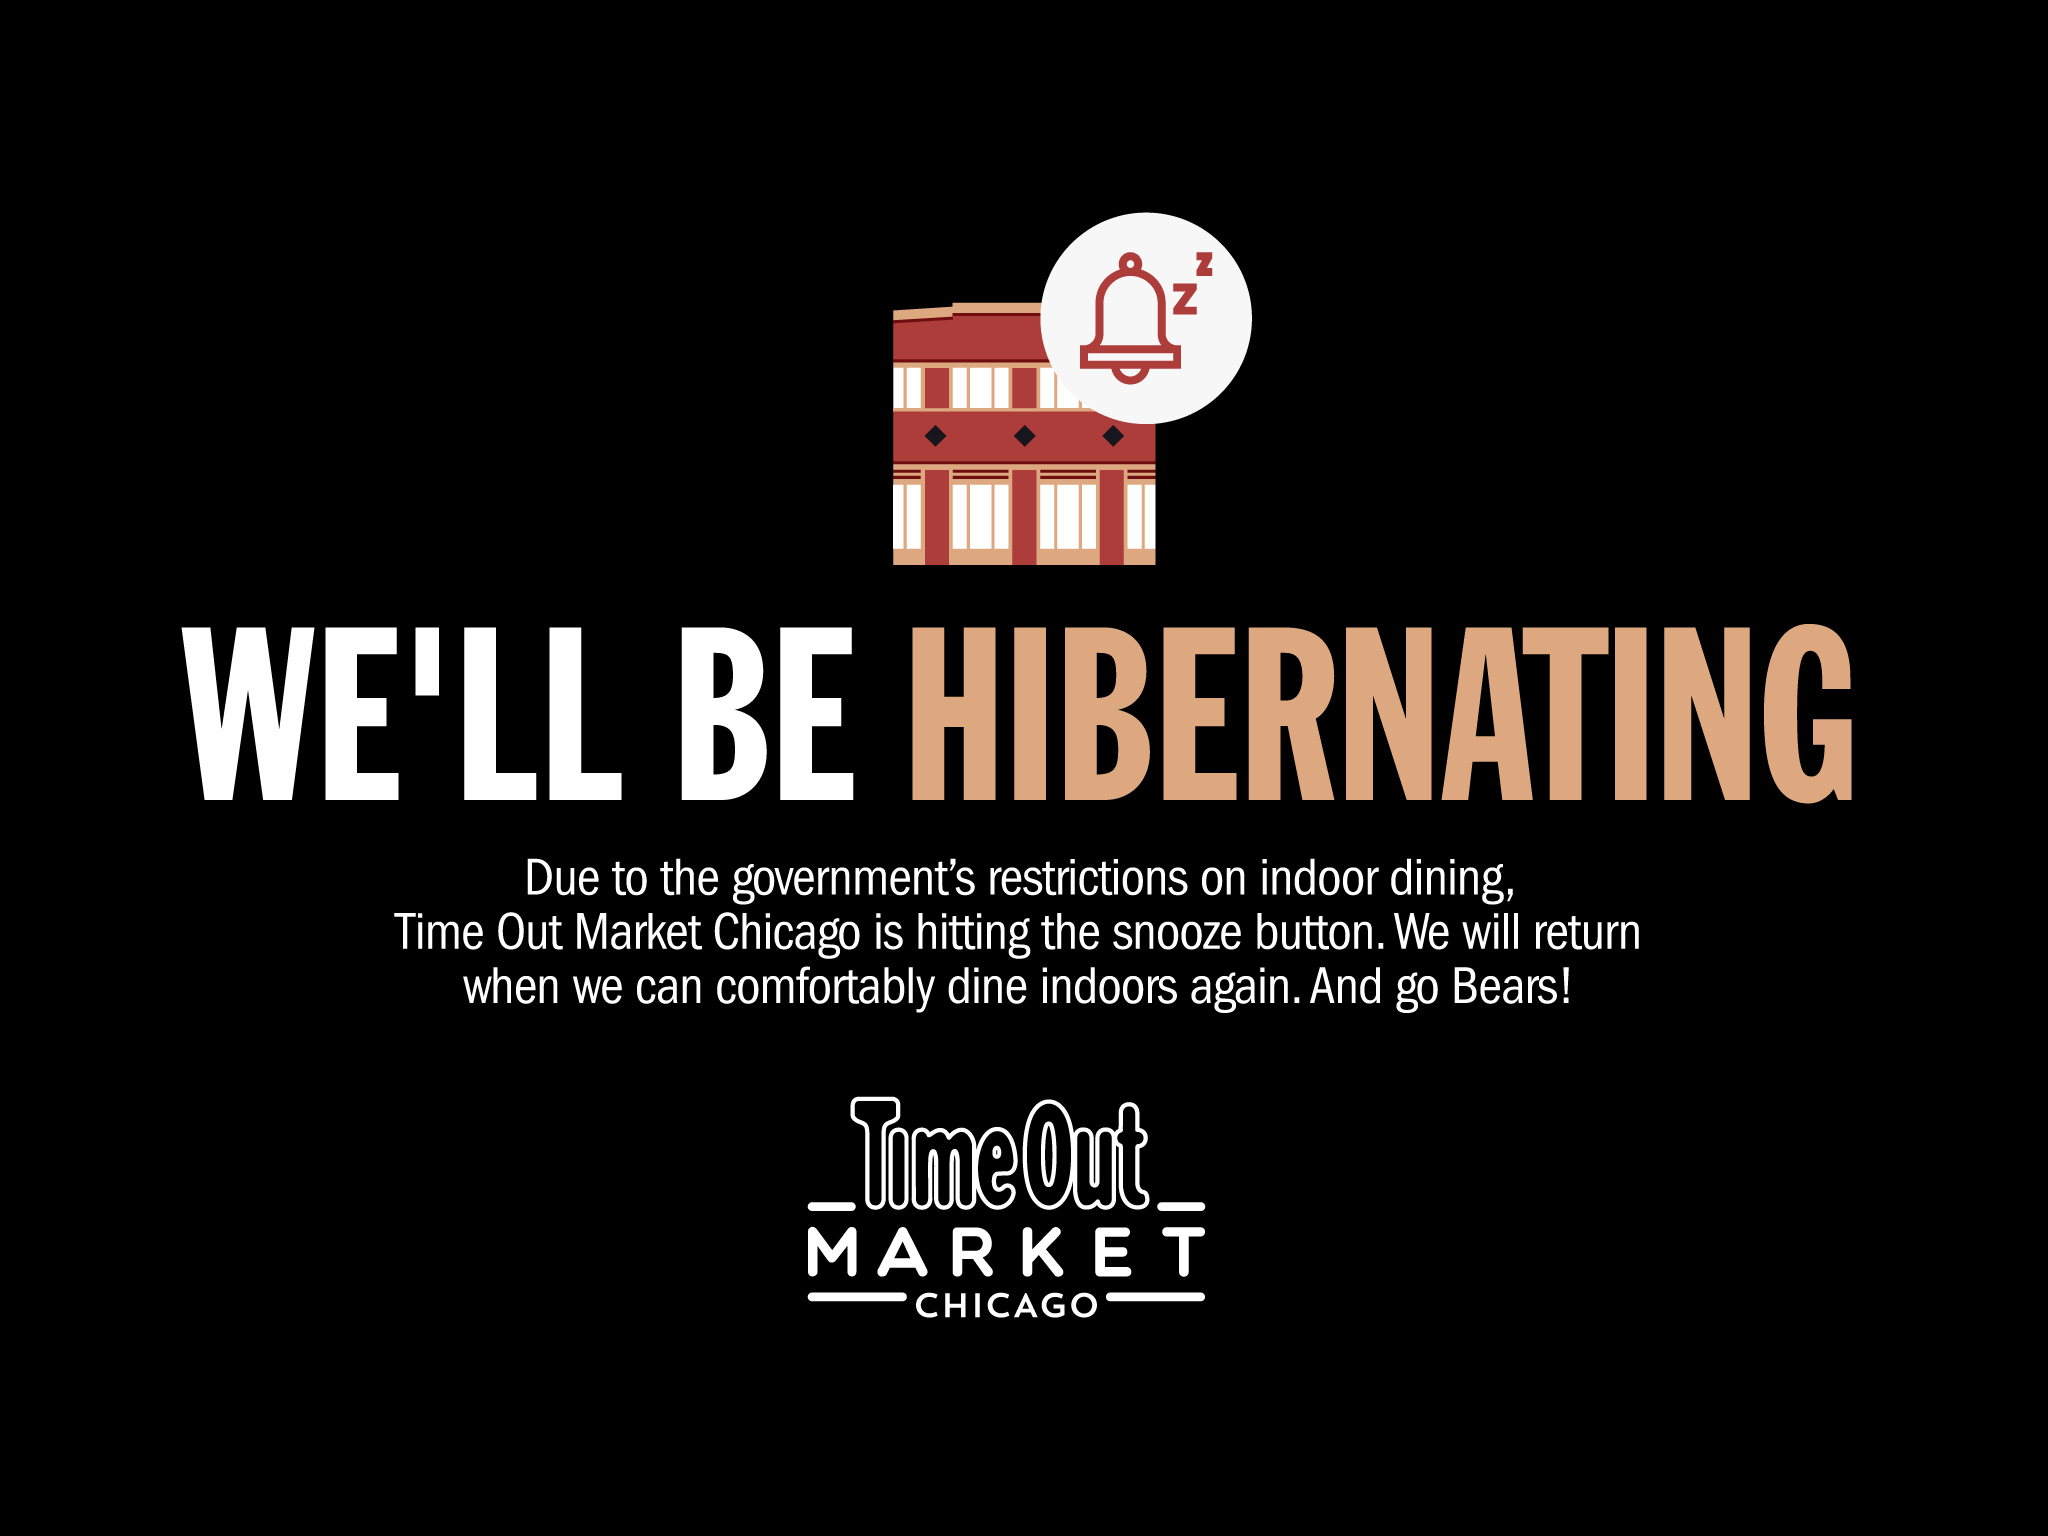 Time Out Market Chicago is hibernating until further notice